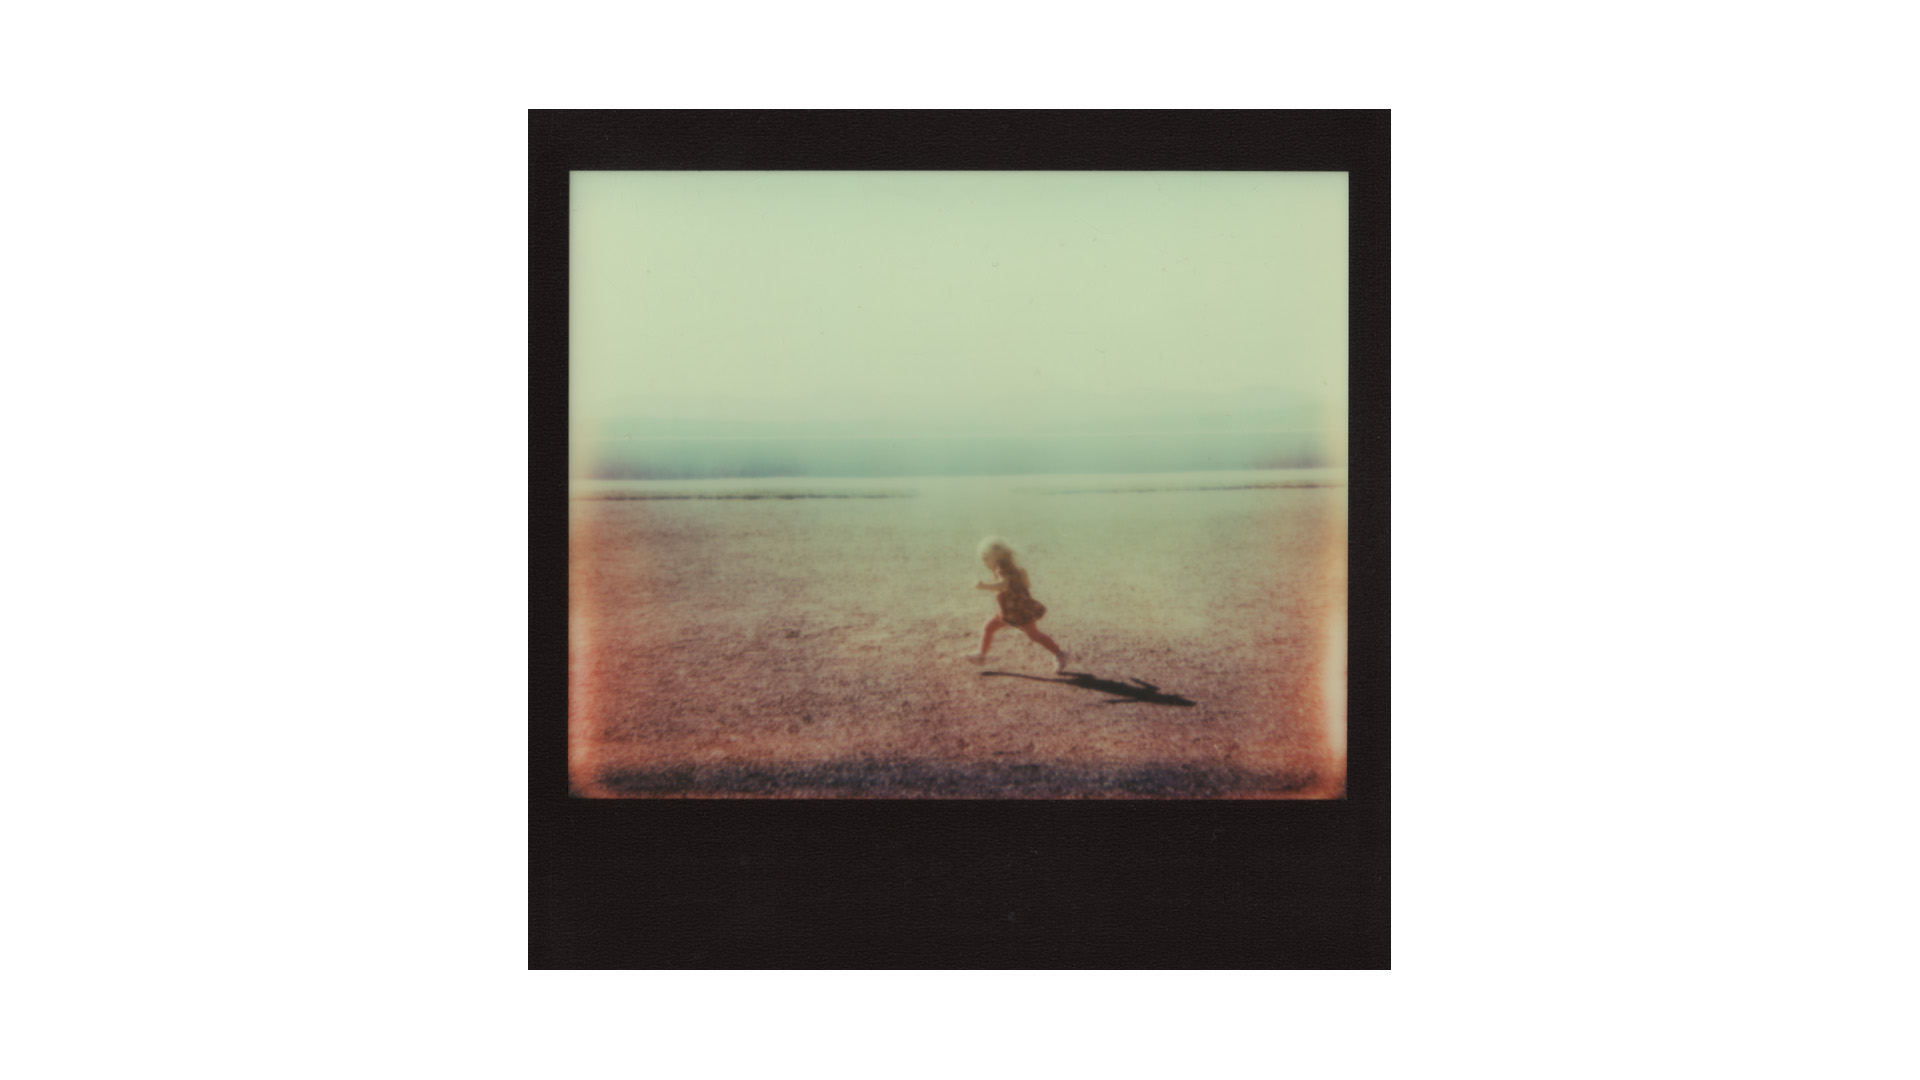 polaroid SPECTRA portrait of child running // (c) jocelynmathewes.com